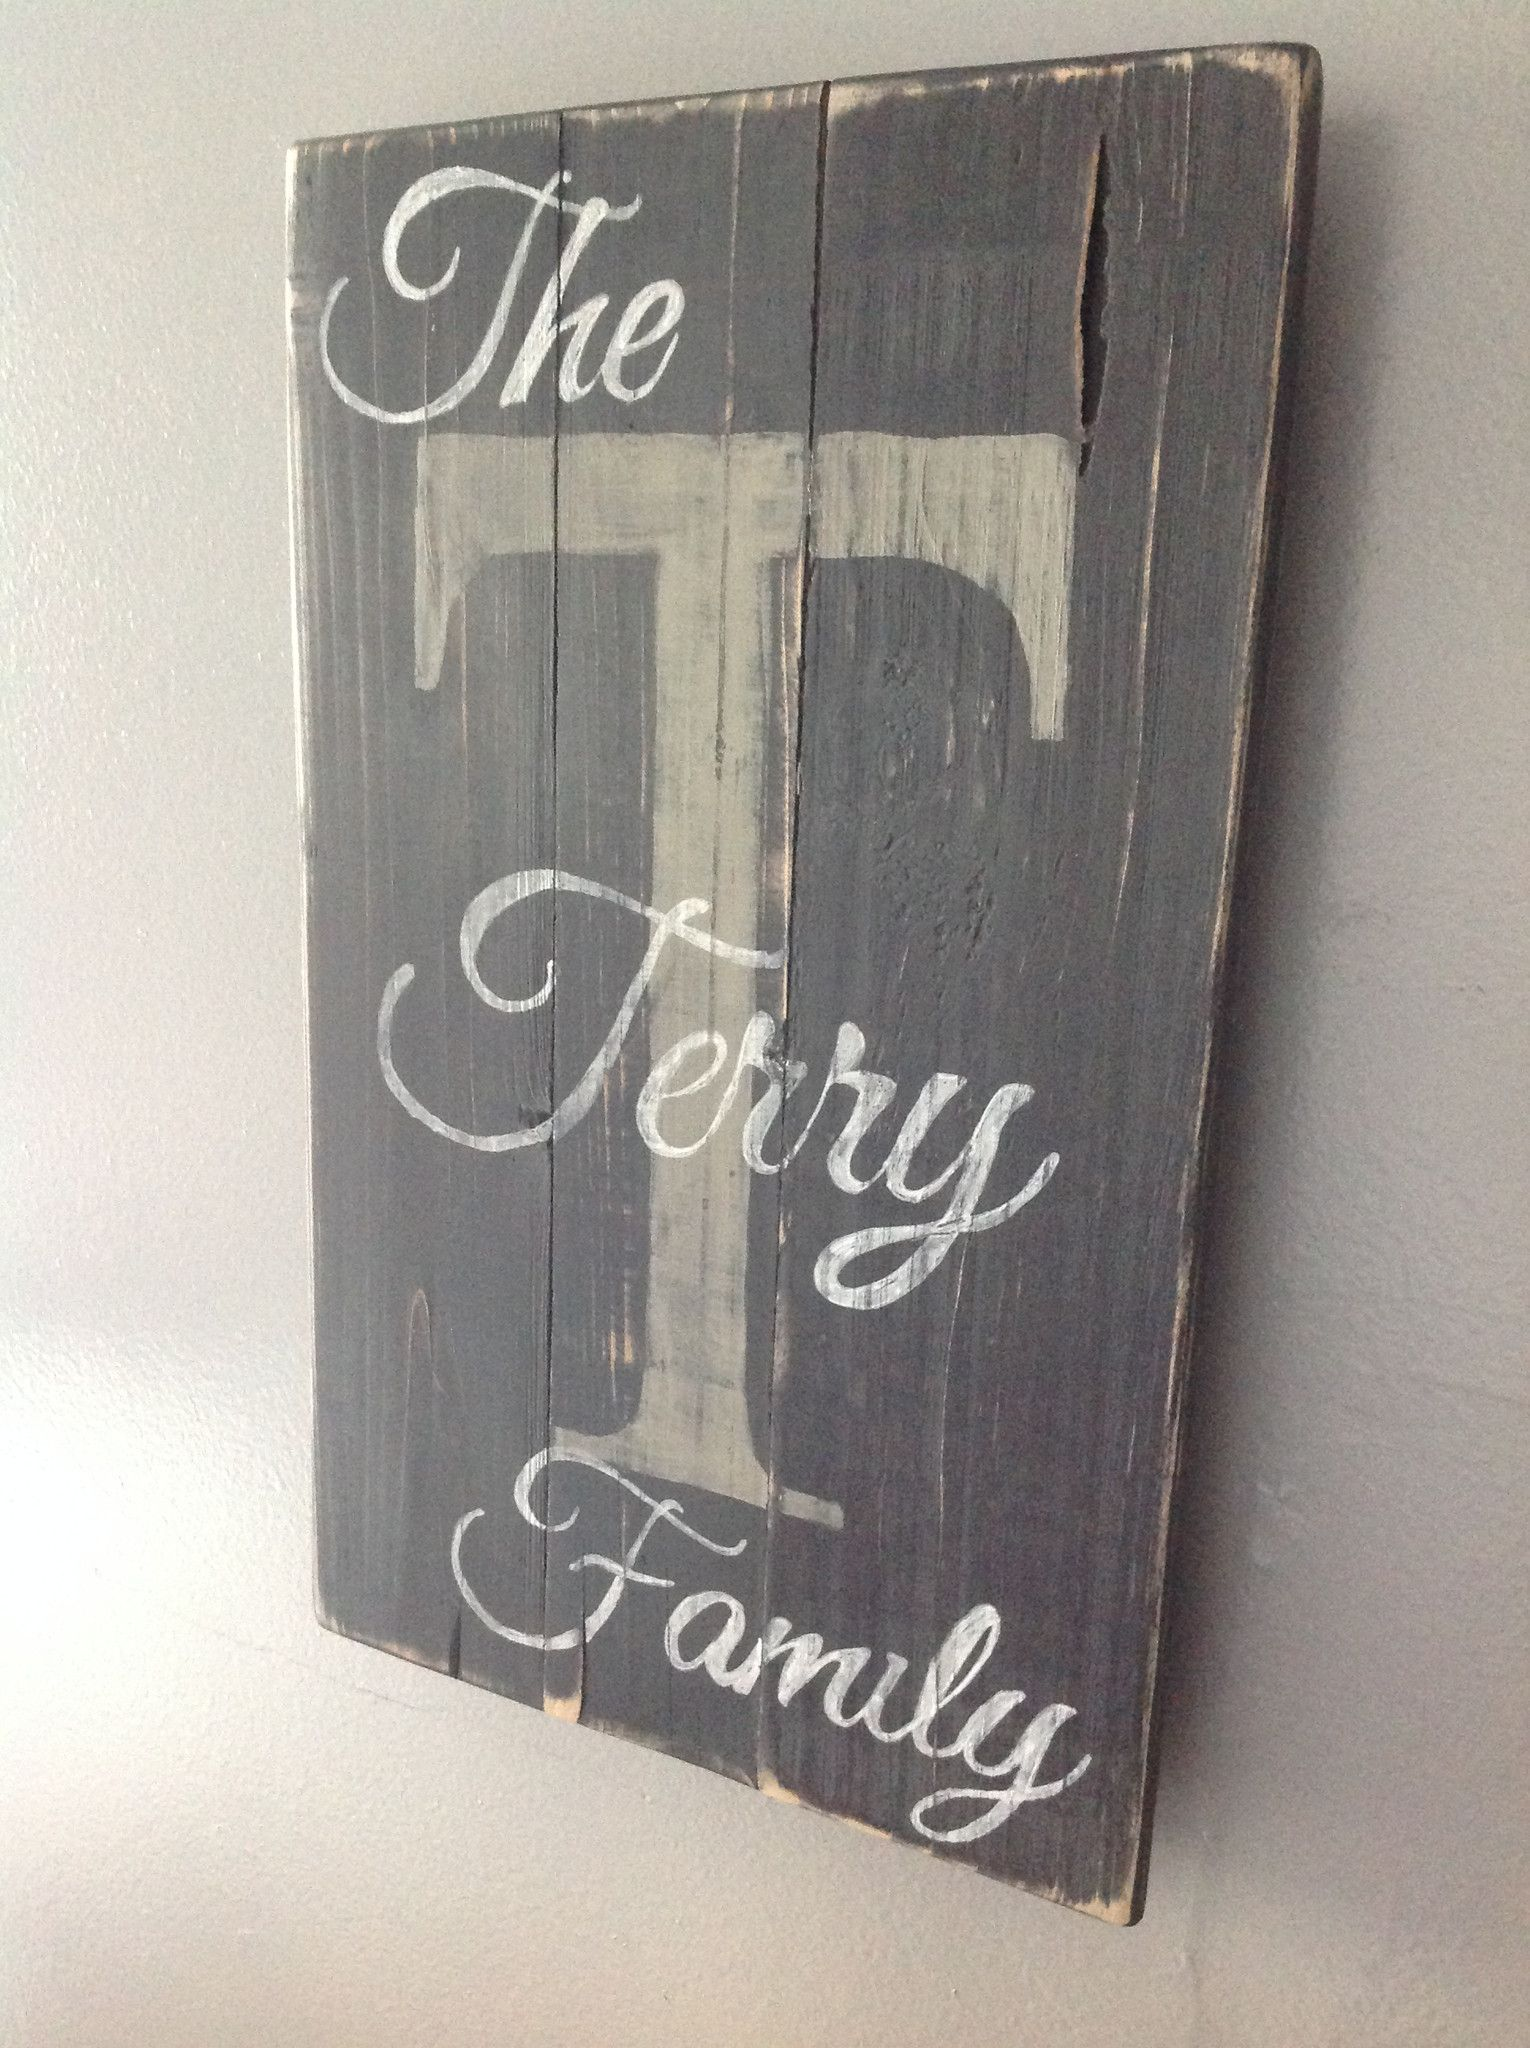 Personalized Wood Sign Painted Black With White Lettering And Cream Back Letter Sealed For Protection 16 1 Personalized Wood Signs Wood Signs Painted Signs